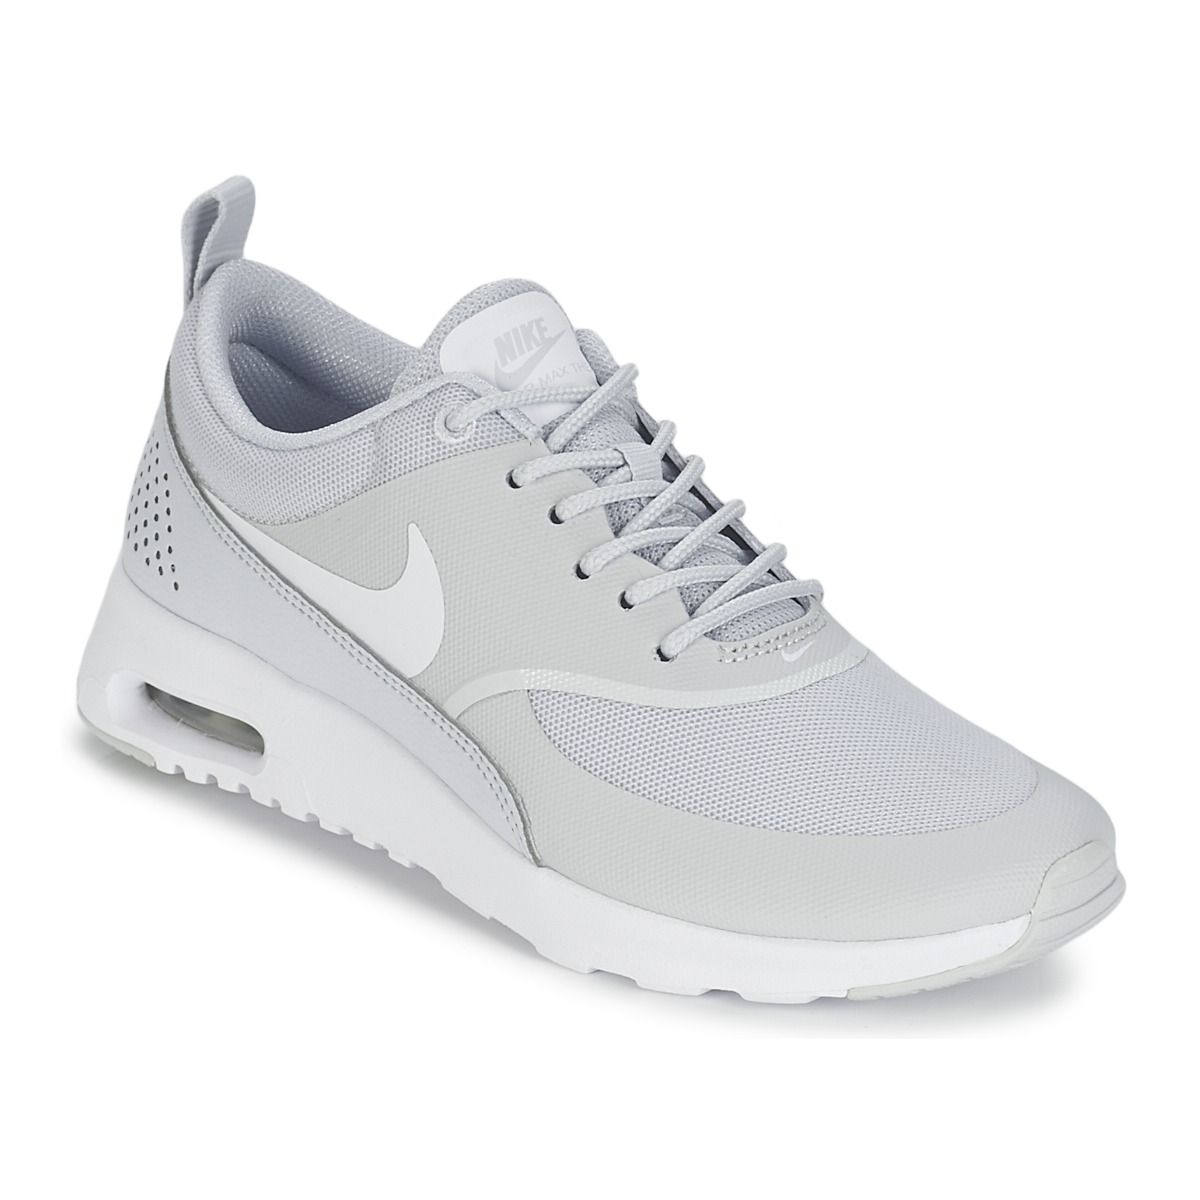 62add3bd786 Baskets basses Nike AIR MAX THEA W Gris prix promo Baskets Femme Spartoo  119.00 €